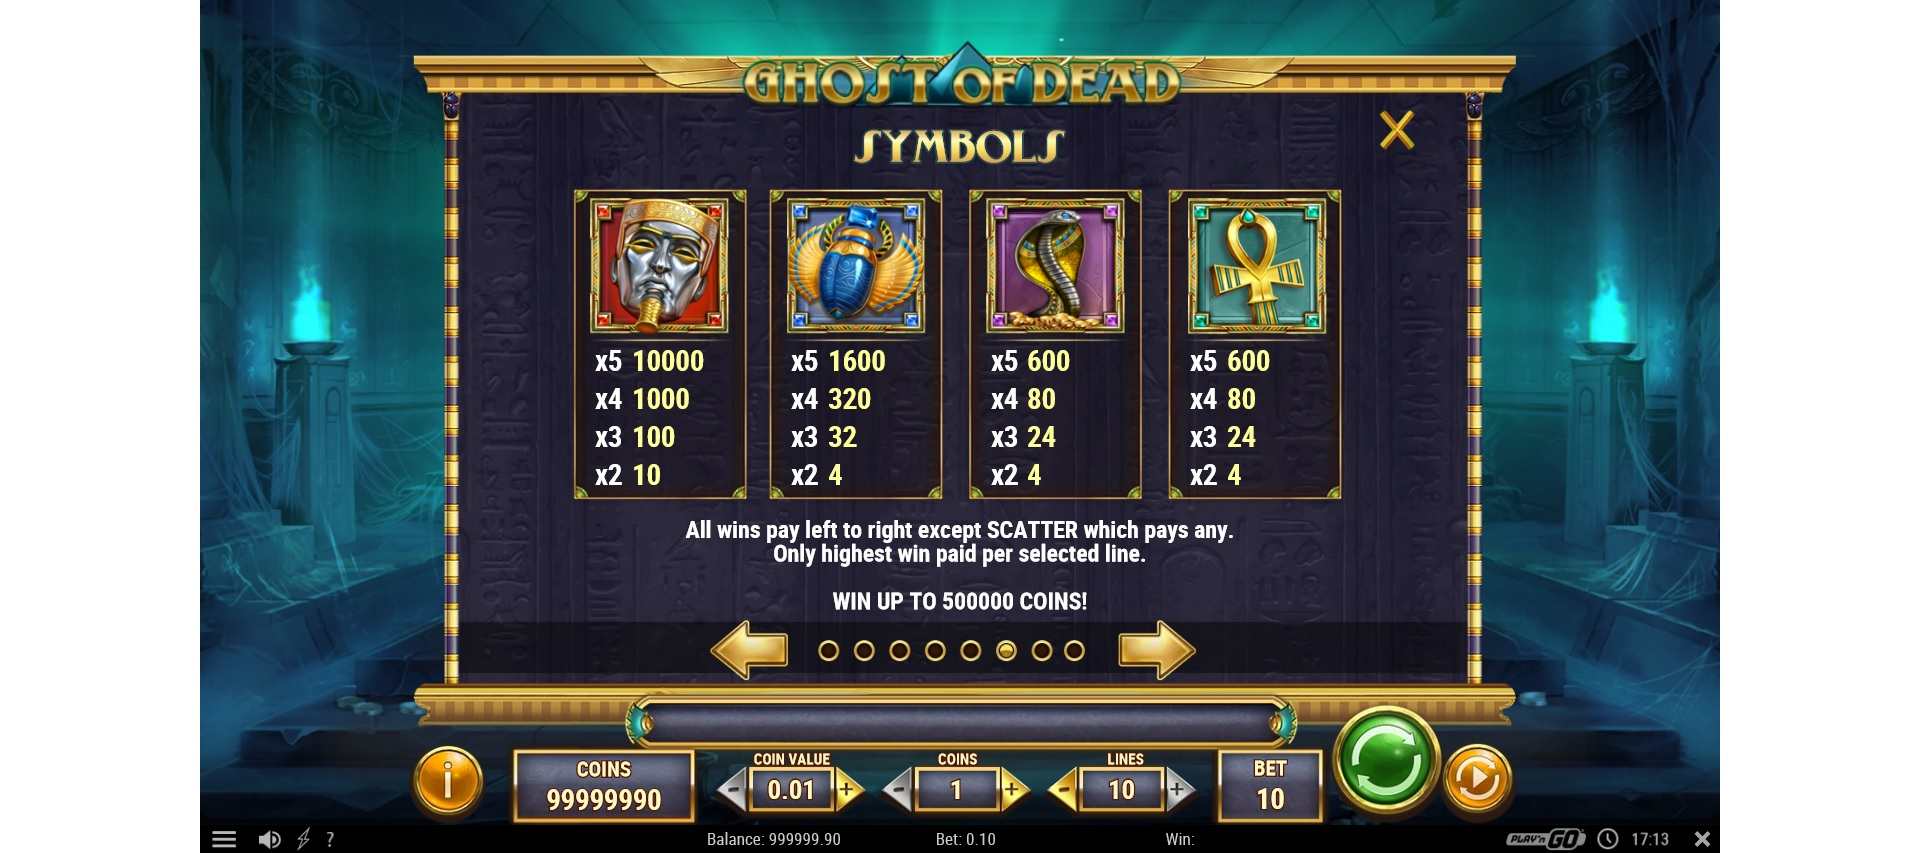 High-value symbols Ghost of dead